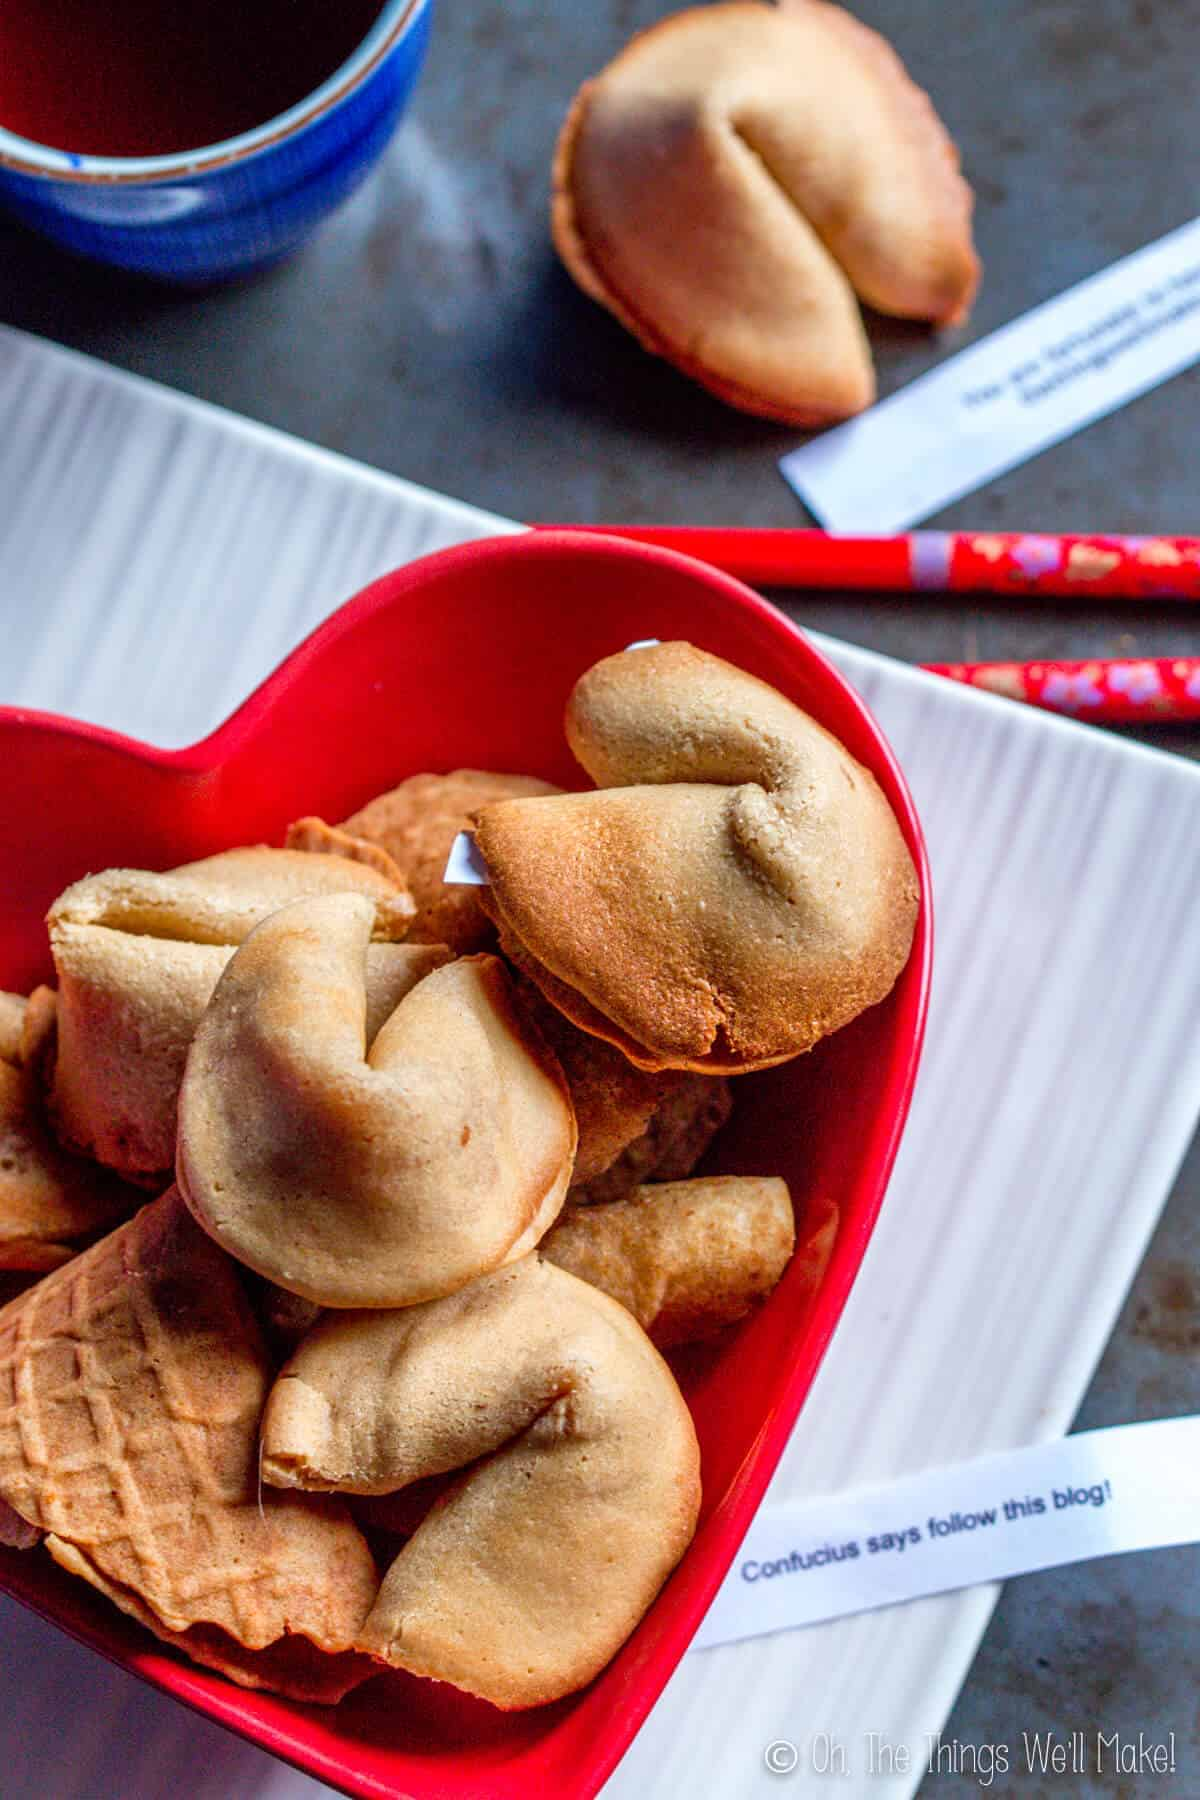 "Overhead view of several homemade fortune cookies in a heart-shaped red bowl. One has a fortune that says ""Confucius says follow this blog."""